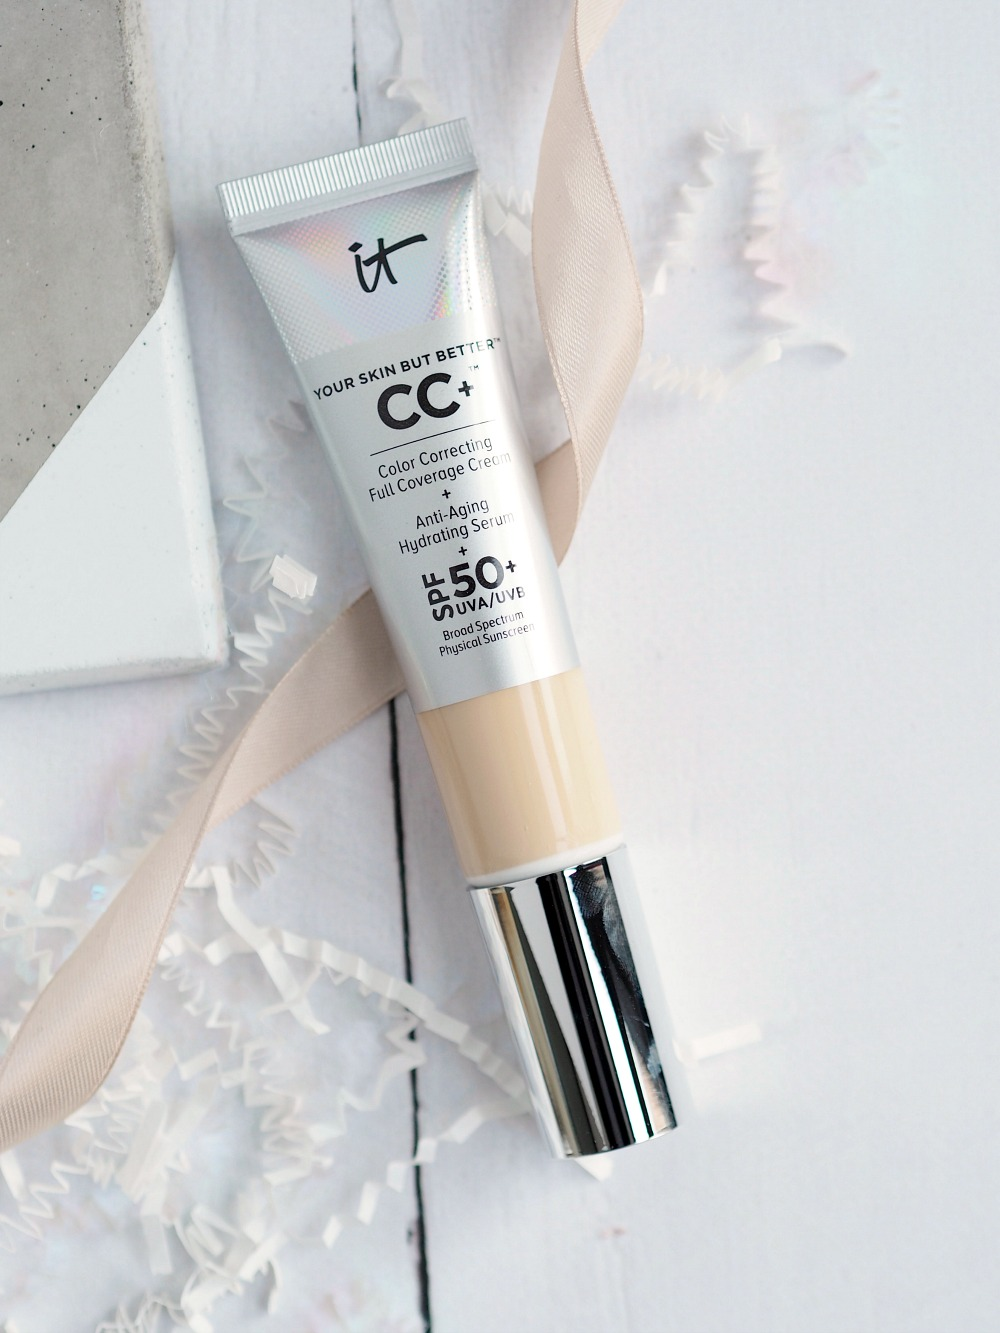 It Cosmetics CC+ Cream Review Canada & Promo Code